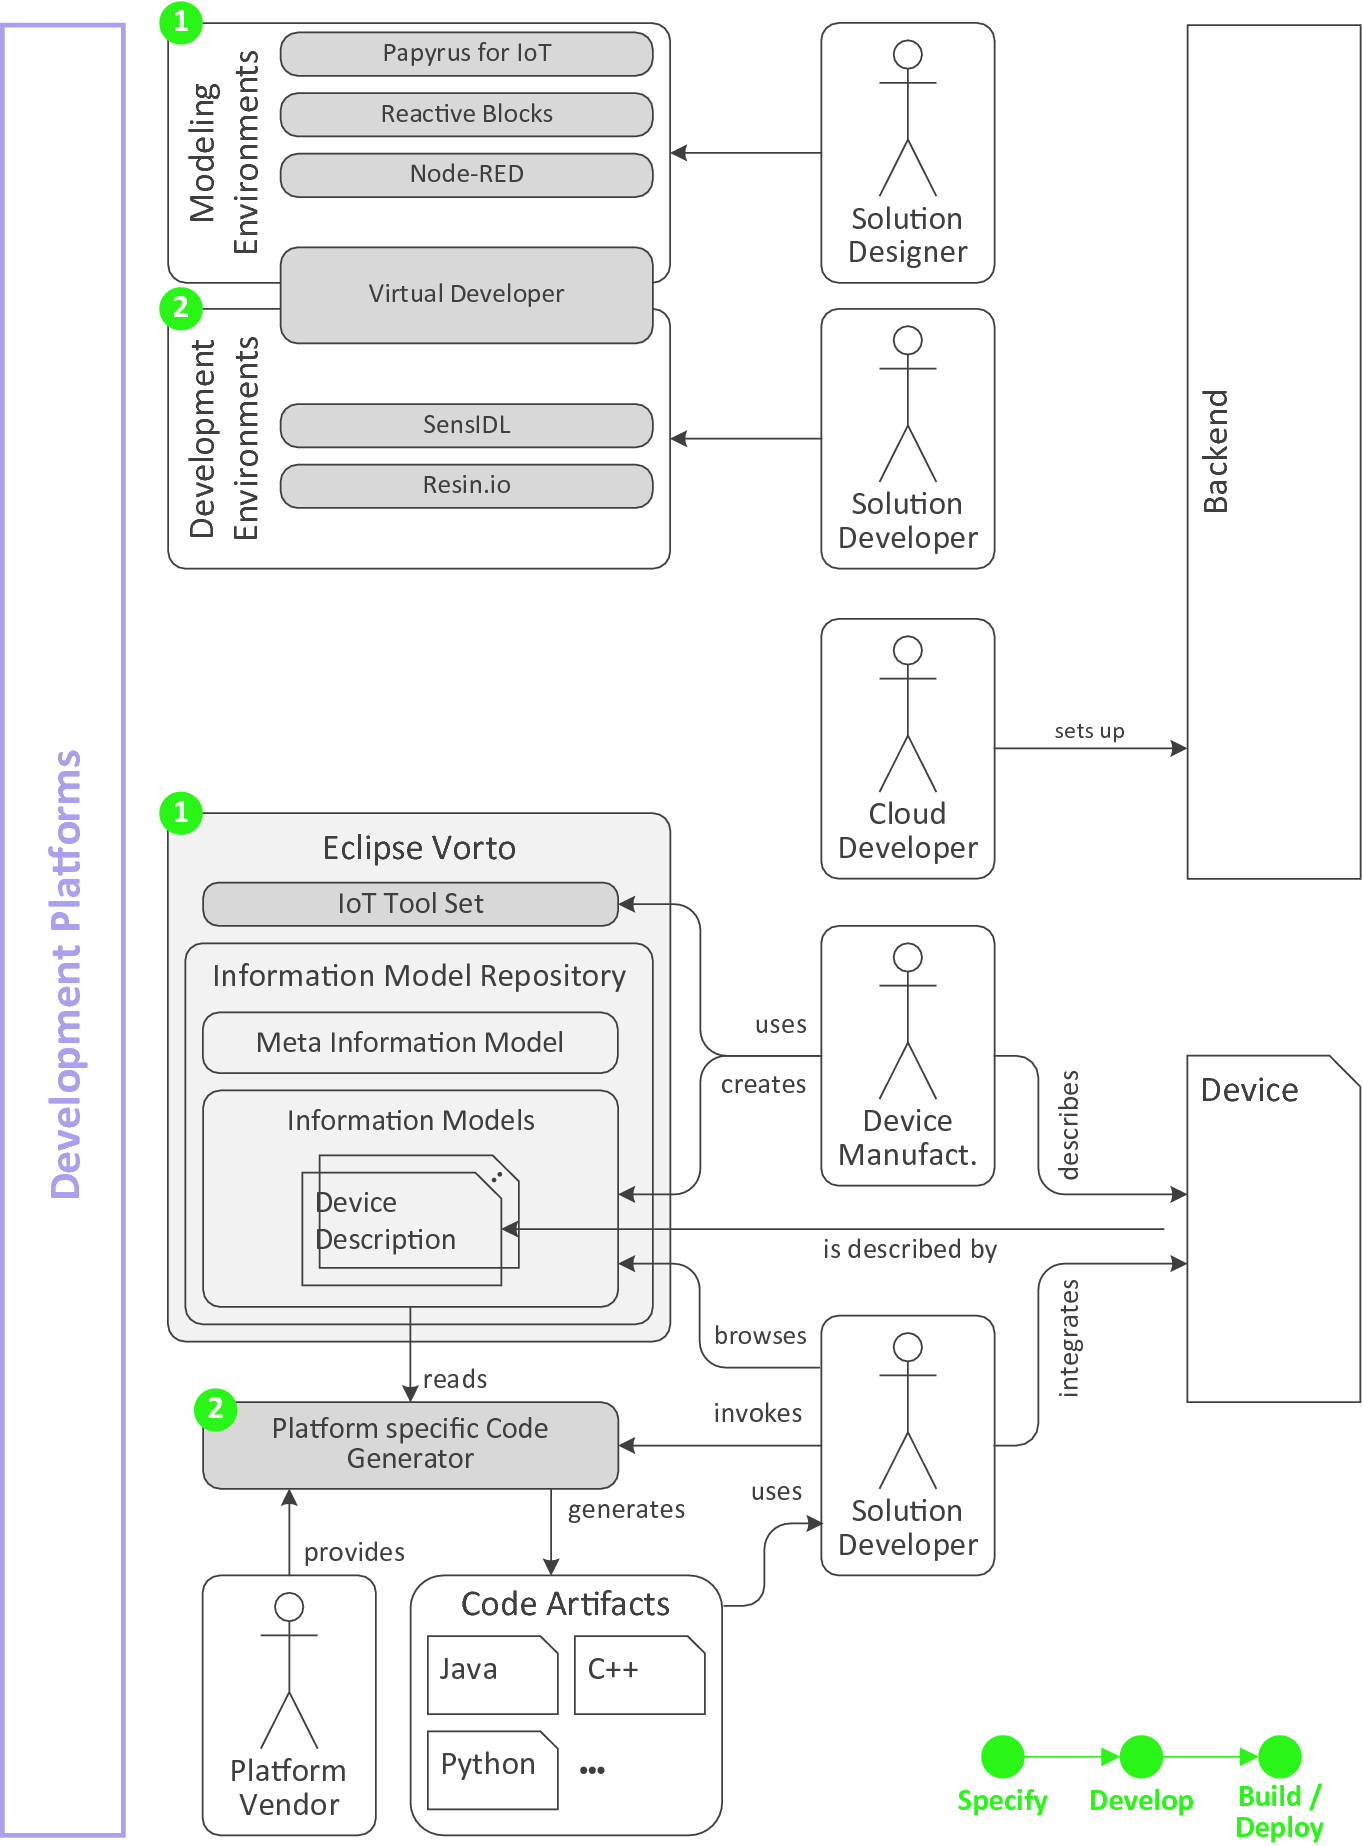 A Review of IoT Technologies, Standards, Tools, Frameworks